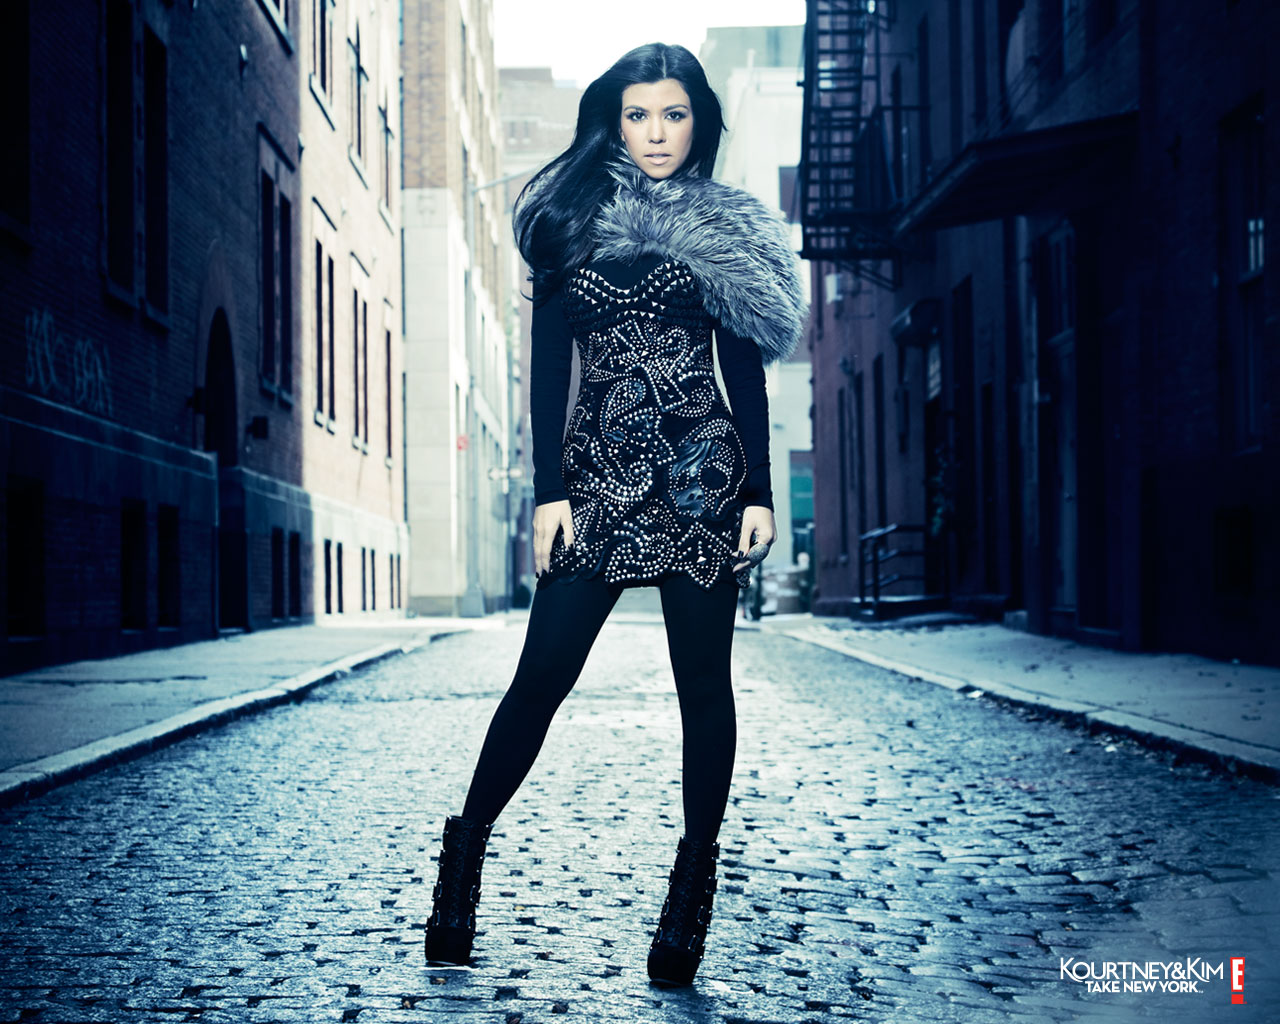 Kourtney Kardashian promo photo for Kourtney and Kim Take New york